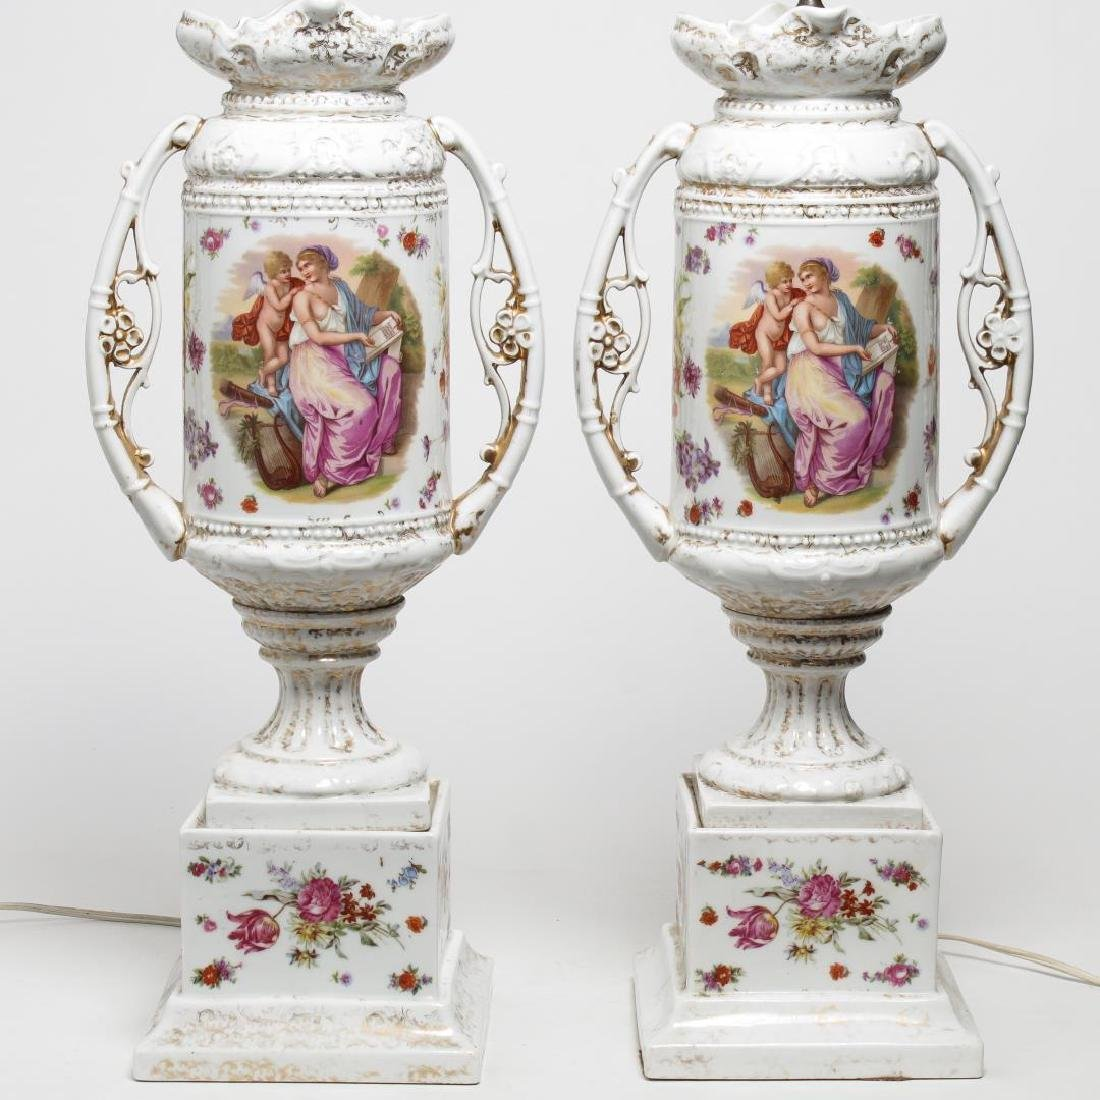 German Gilt Porcelain Vase Lamps, 2